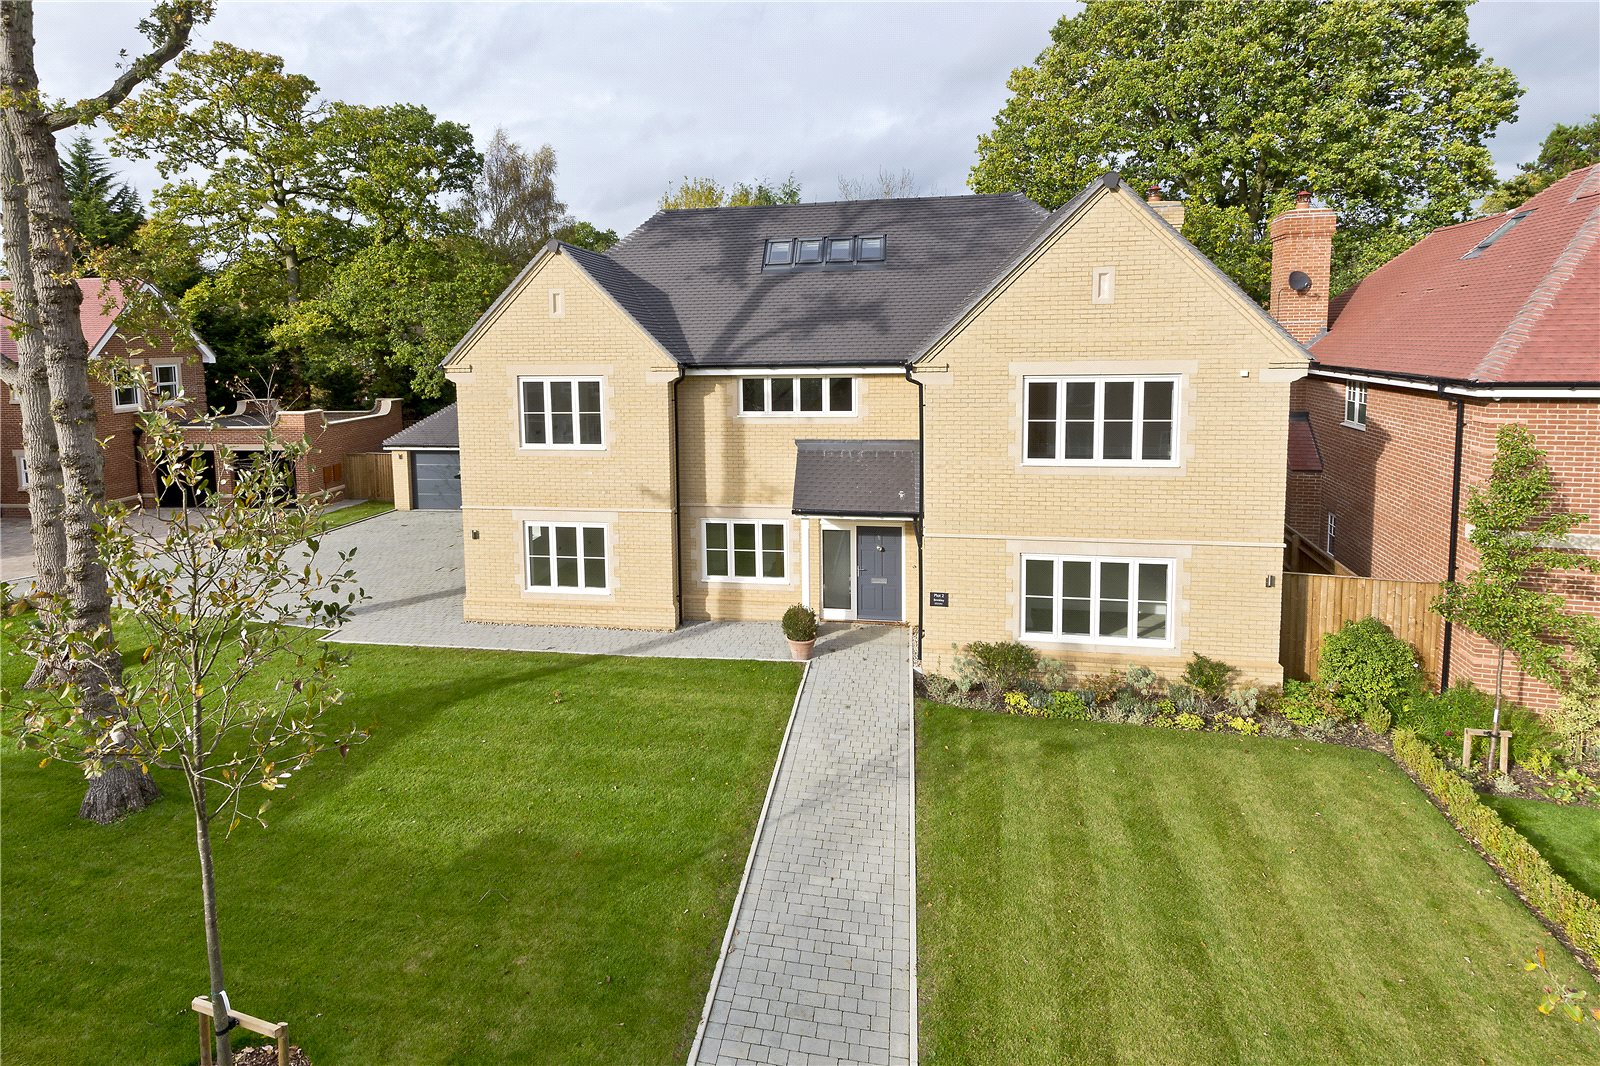 Single Family Home for Sale at Glade In The Spinney, Gerrards Cross, Buckinghamshire, SL9 Gerrards Cross, England